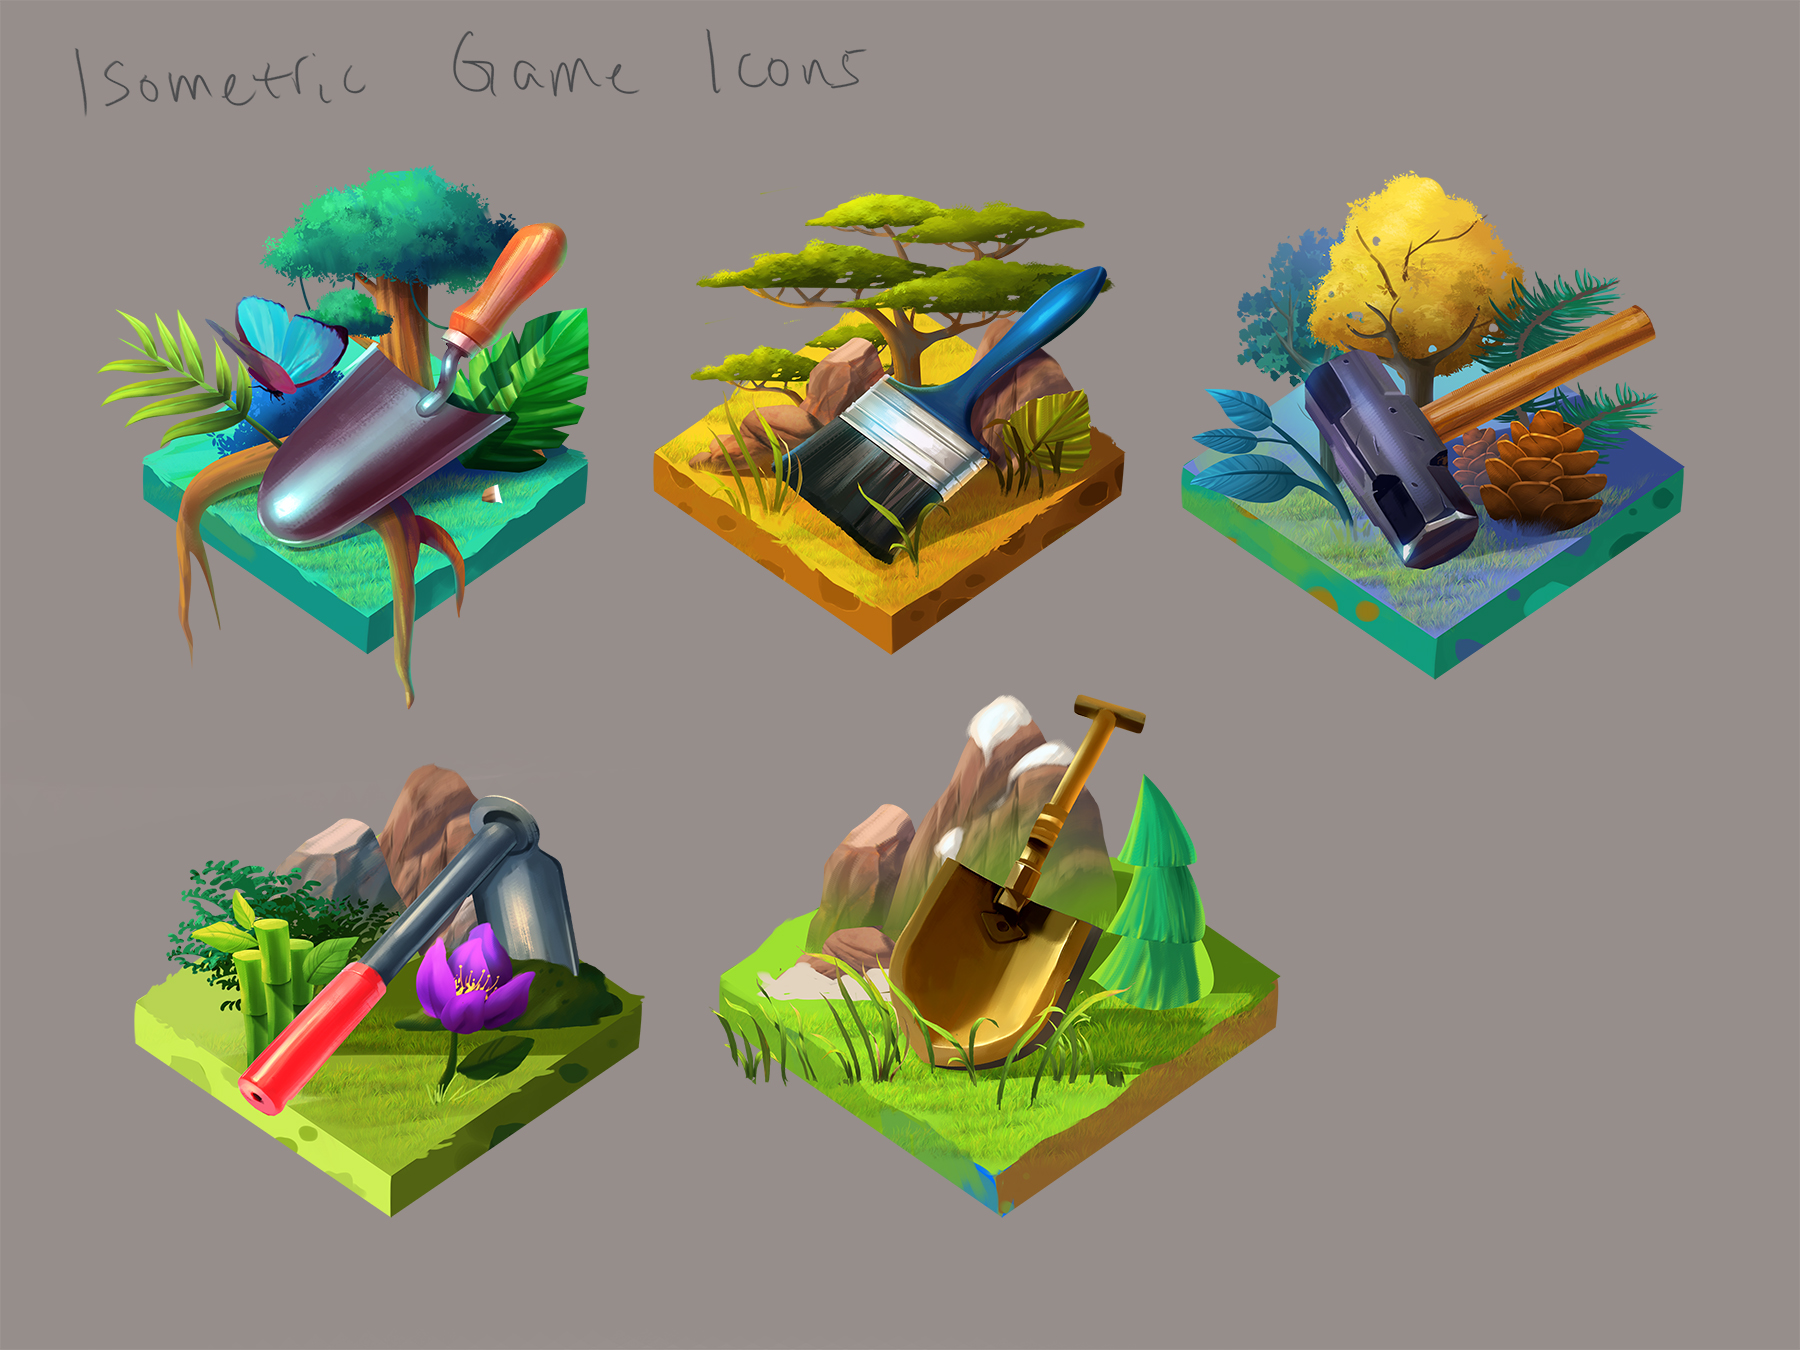 Isometric game icons designed for the UI screen.